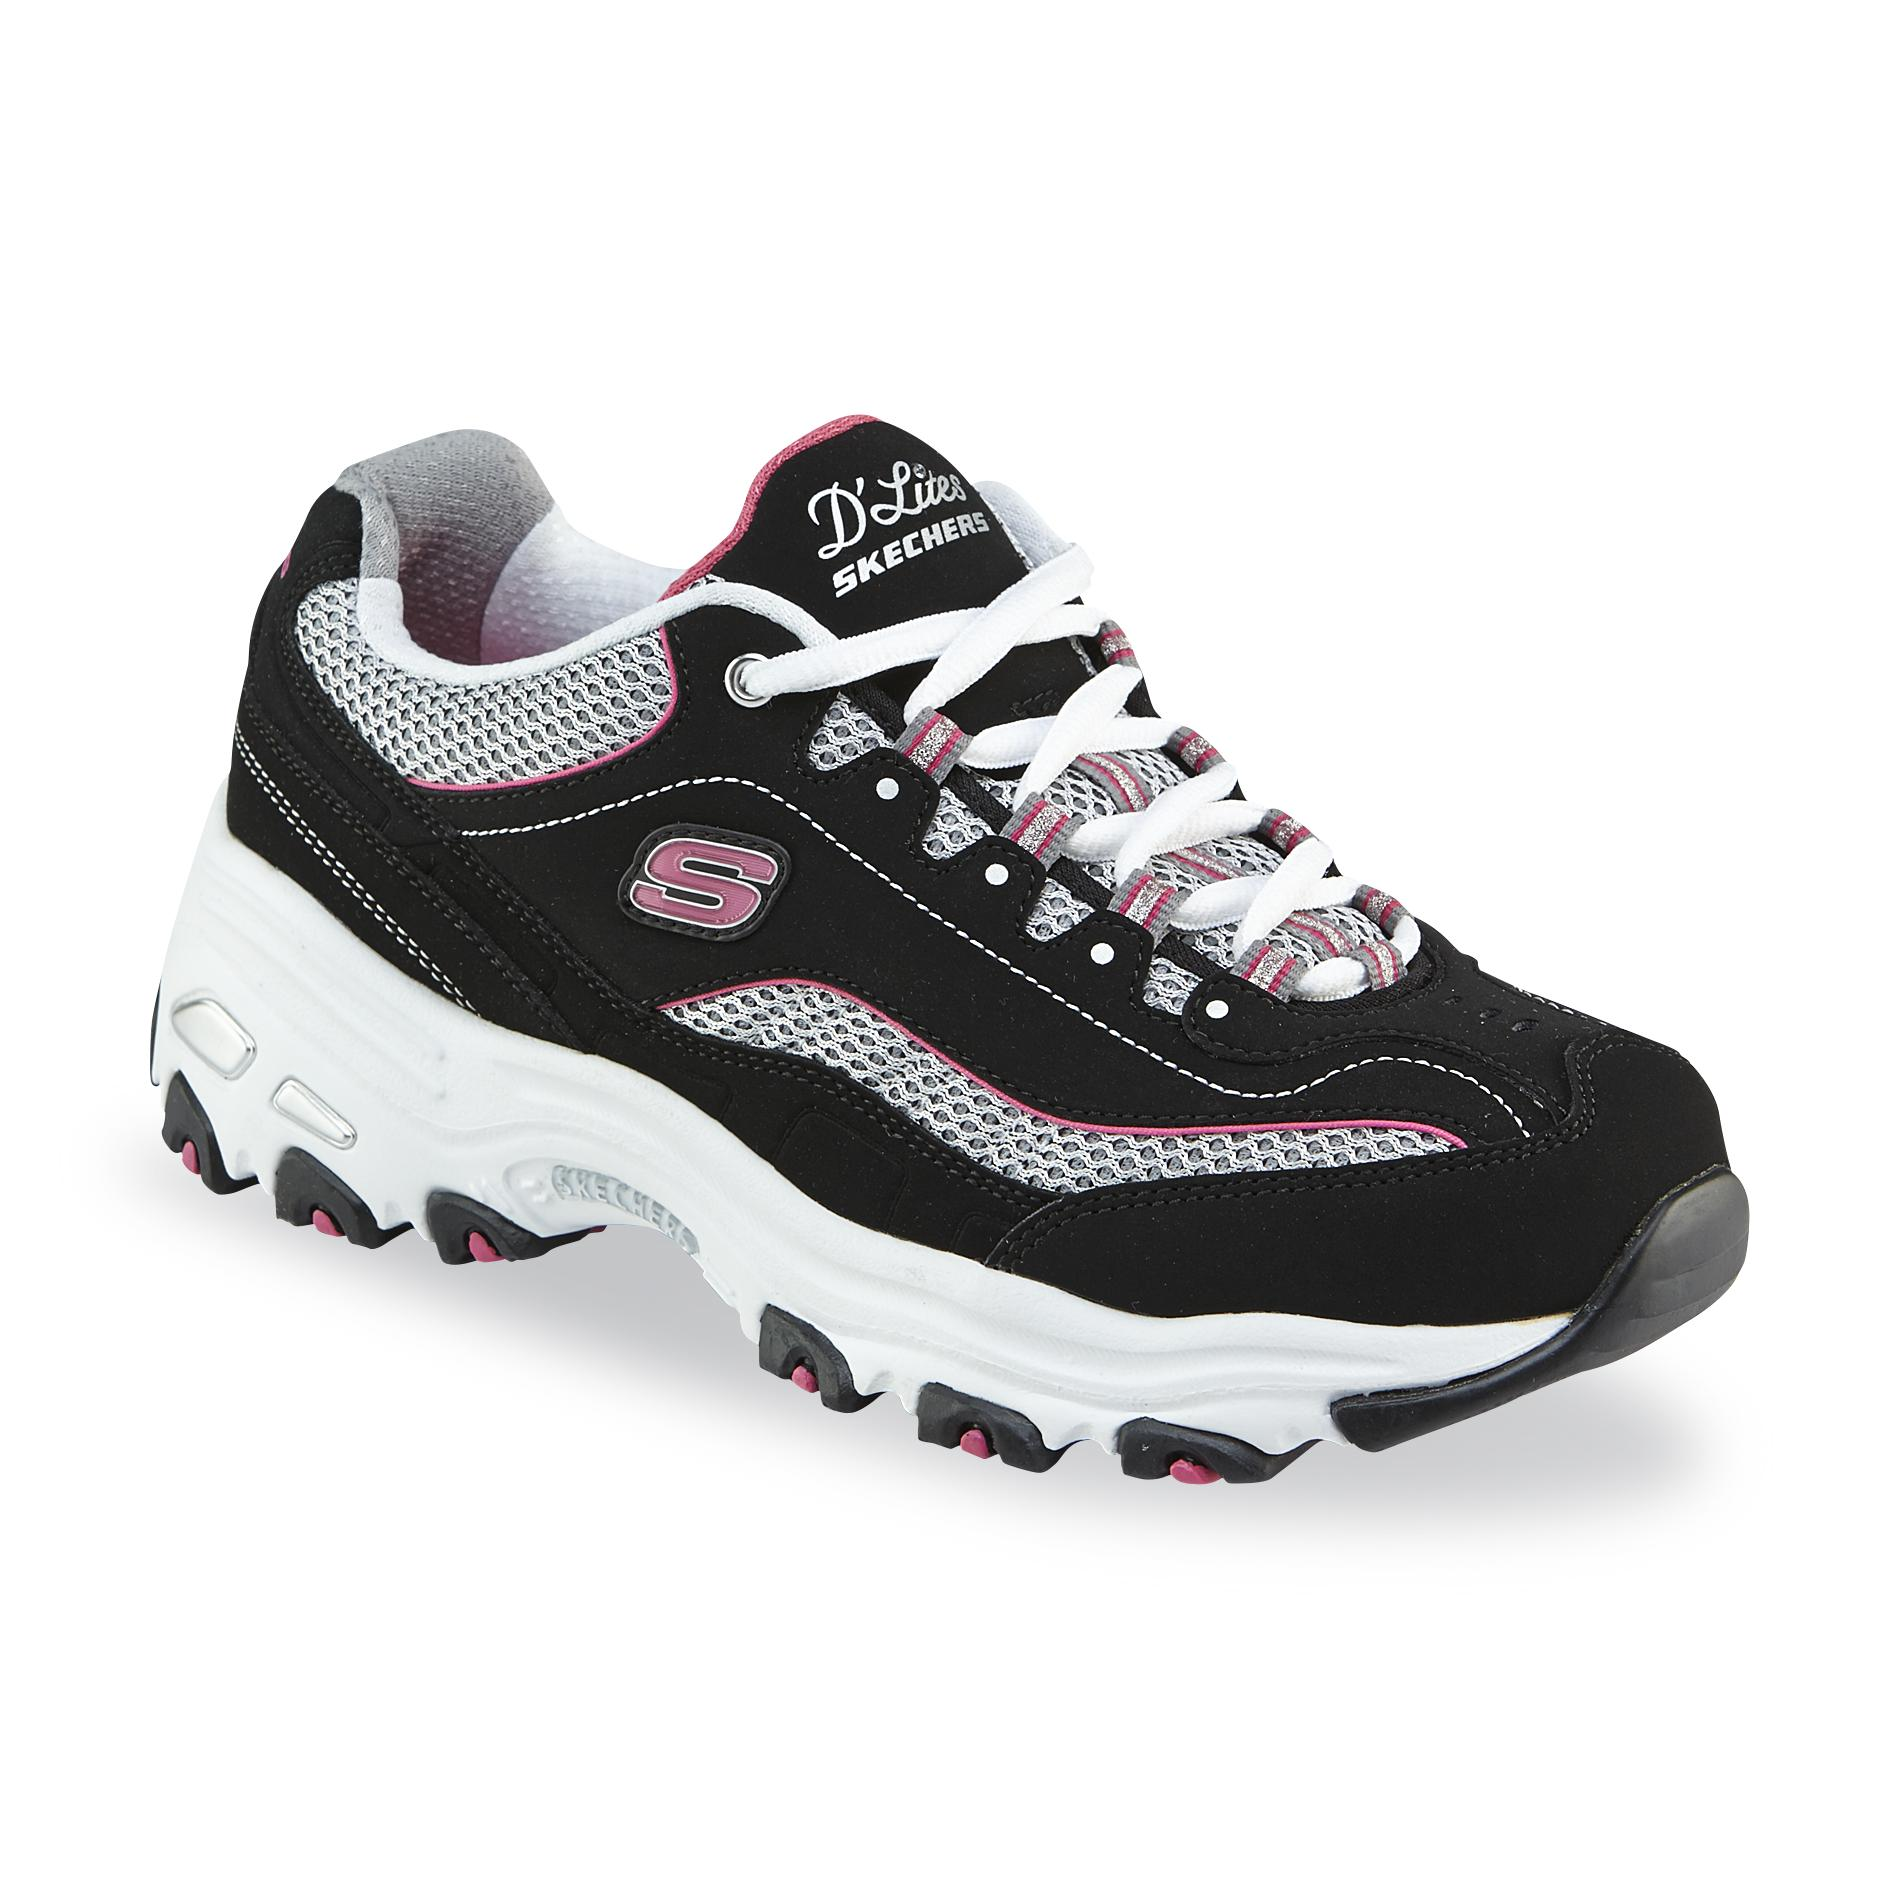 Skechers sneakers skechers womenu0027s du0027lites life saver wide width athletic shoe -  black/pink/white CRMQXTU